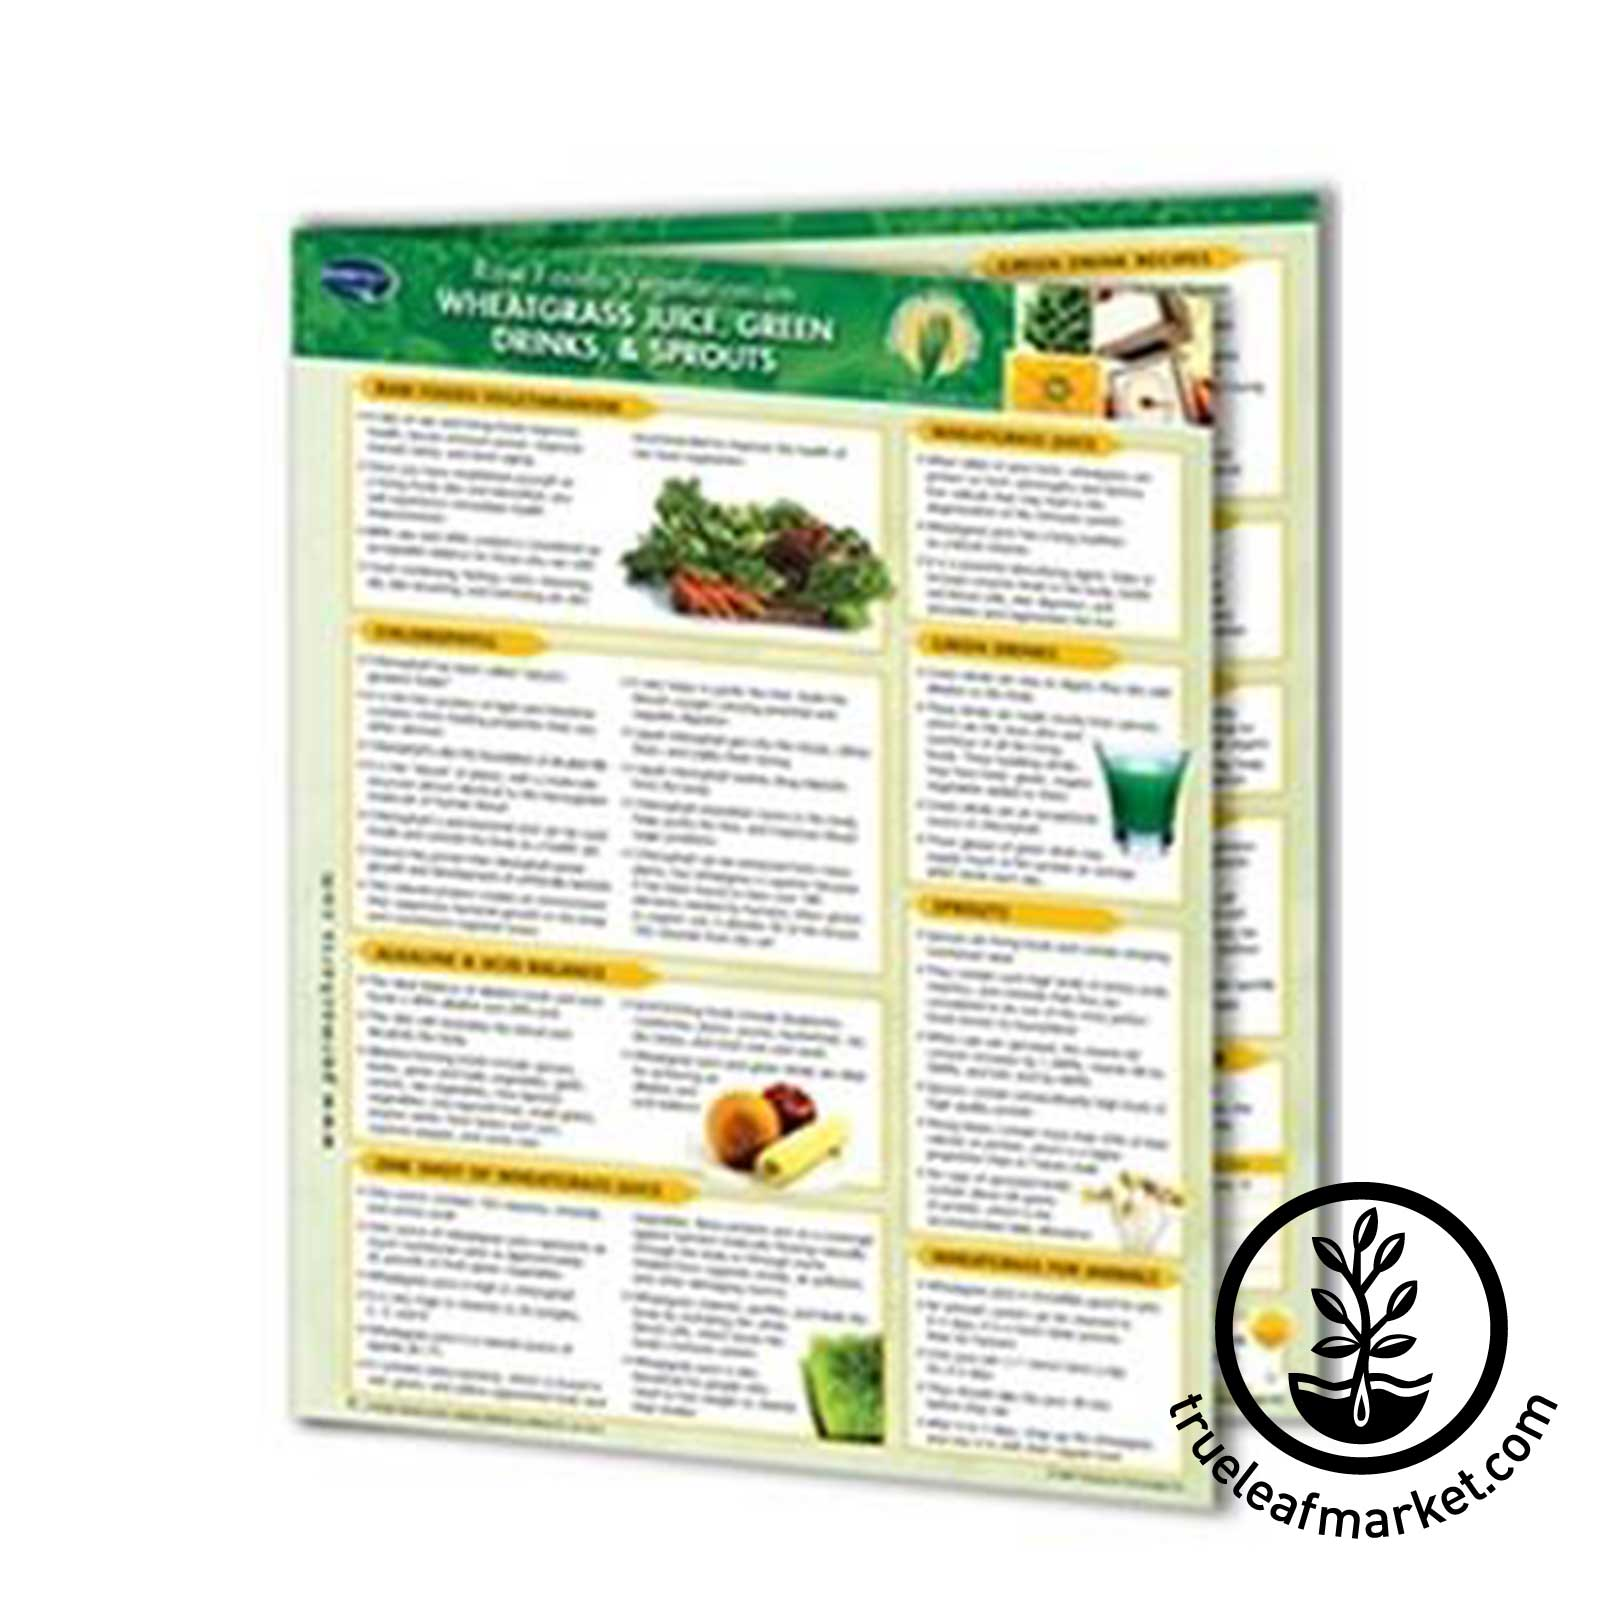 Permacharts - Raw Food Reference Card / Chart raw foods,wheatgrass juice, wheat grass, juice,green drinks, sprouts, permachart, chart